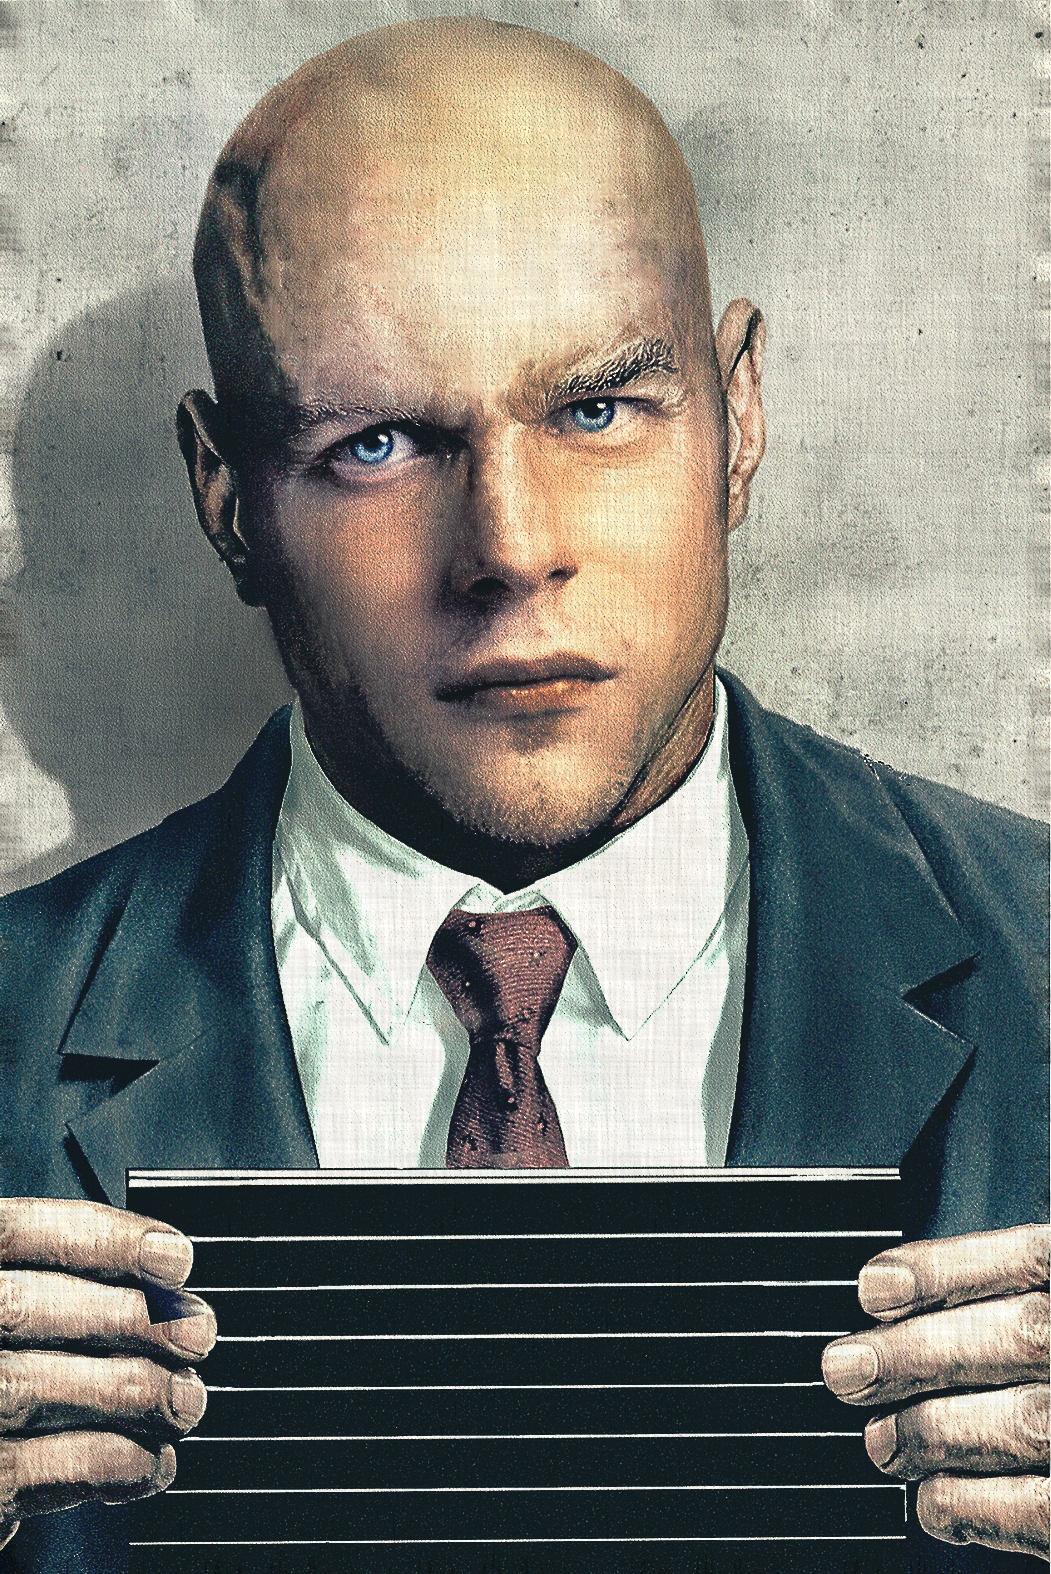 Jesse Eisenberg as Lex Luthor by Darren1987